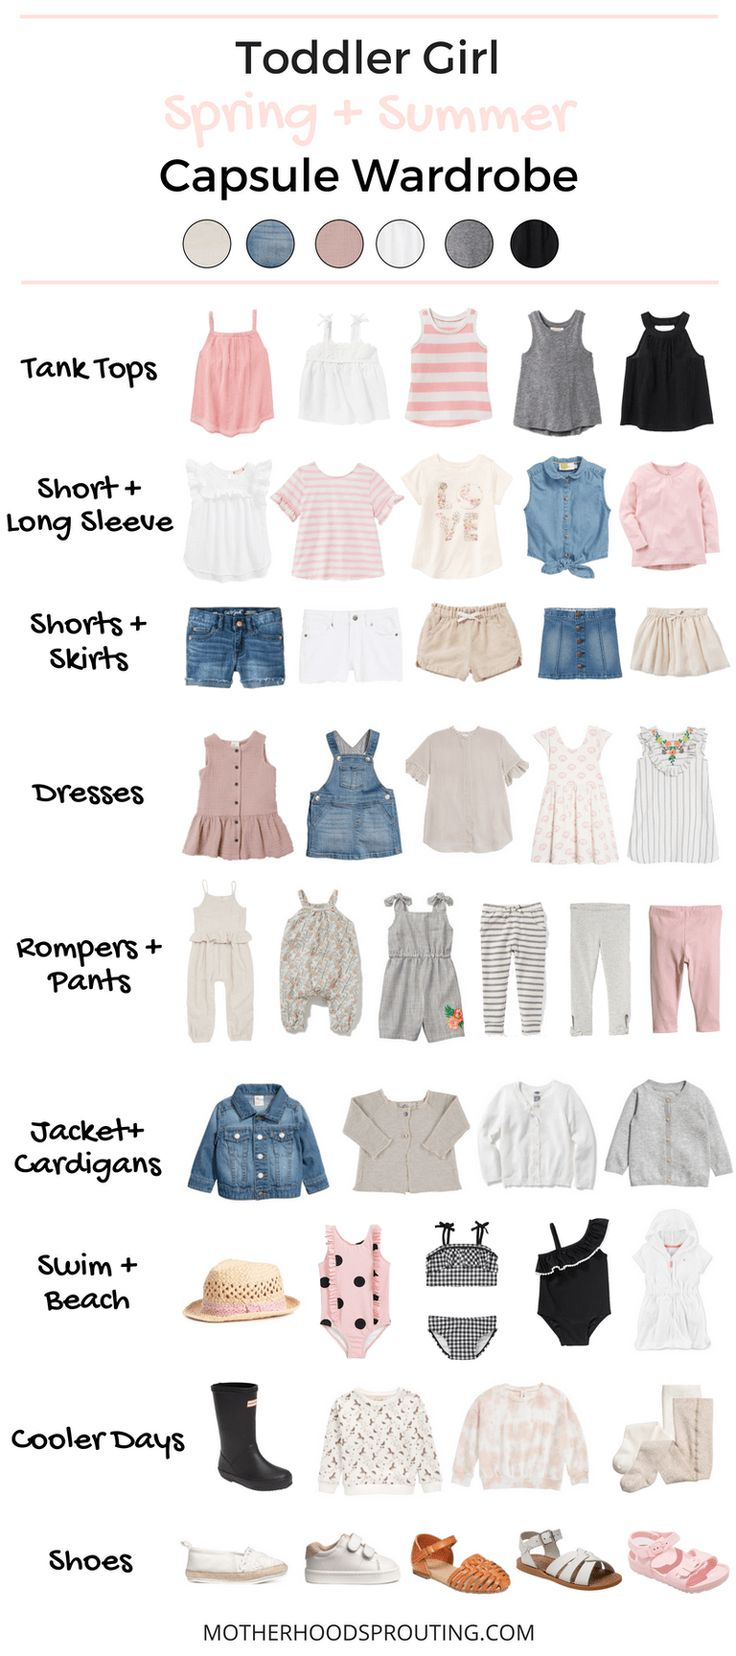 Toddler Girl Capsule Wardrobe: Spring and Summer! A summer wardrobe for your toddler girl! Great toddler girl clothes for summer vacations or trips to the beach. This capsule wardrobe for summer can be used as a shopping checklist when your go to buy your toddlers summer clothes!